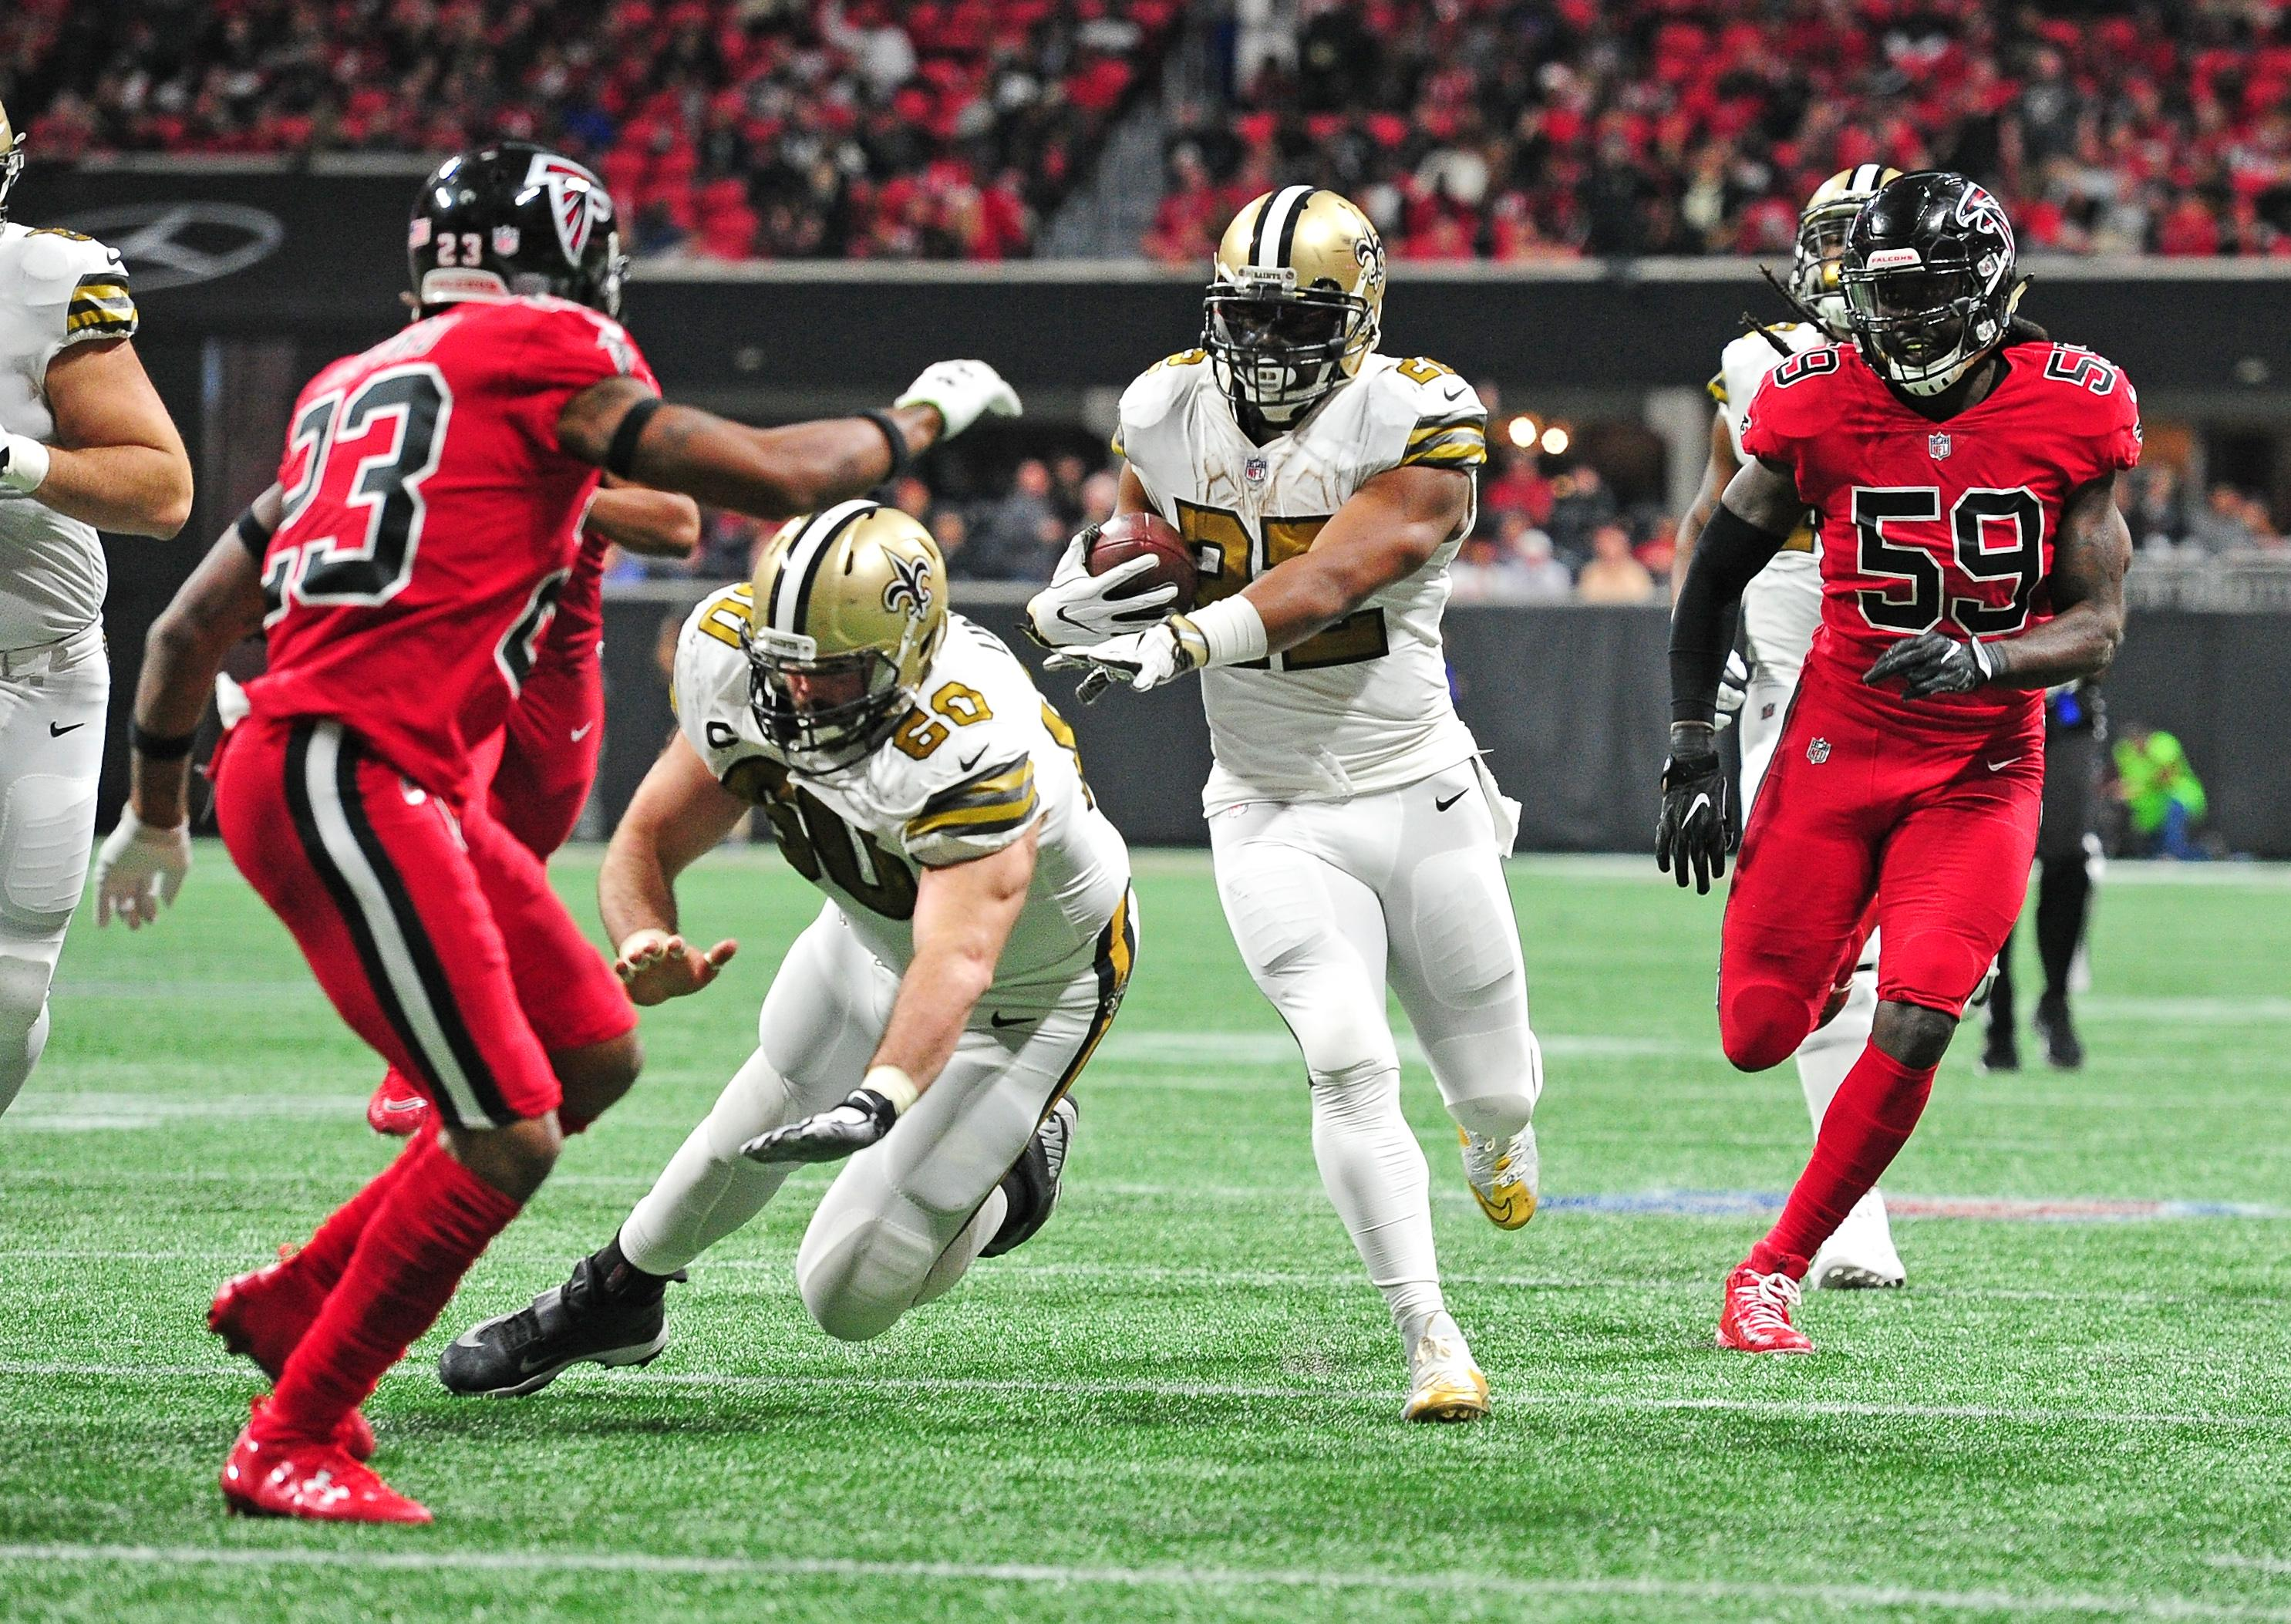 Freeman runs for 126 yards, Falcons hold off Bucs 24-21